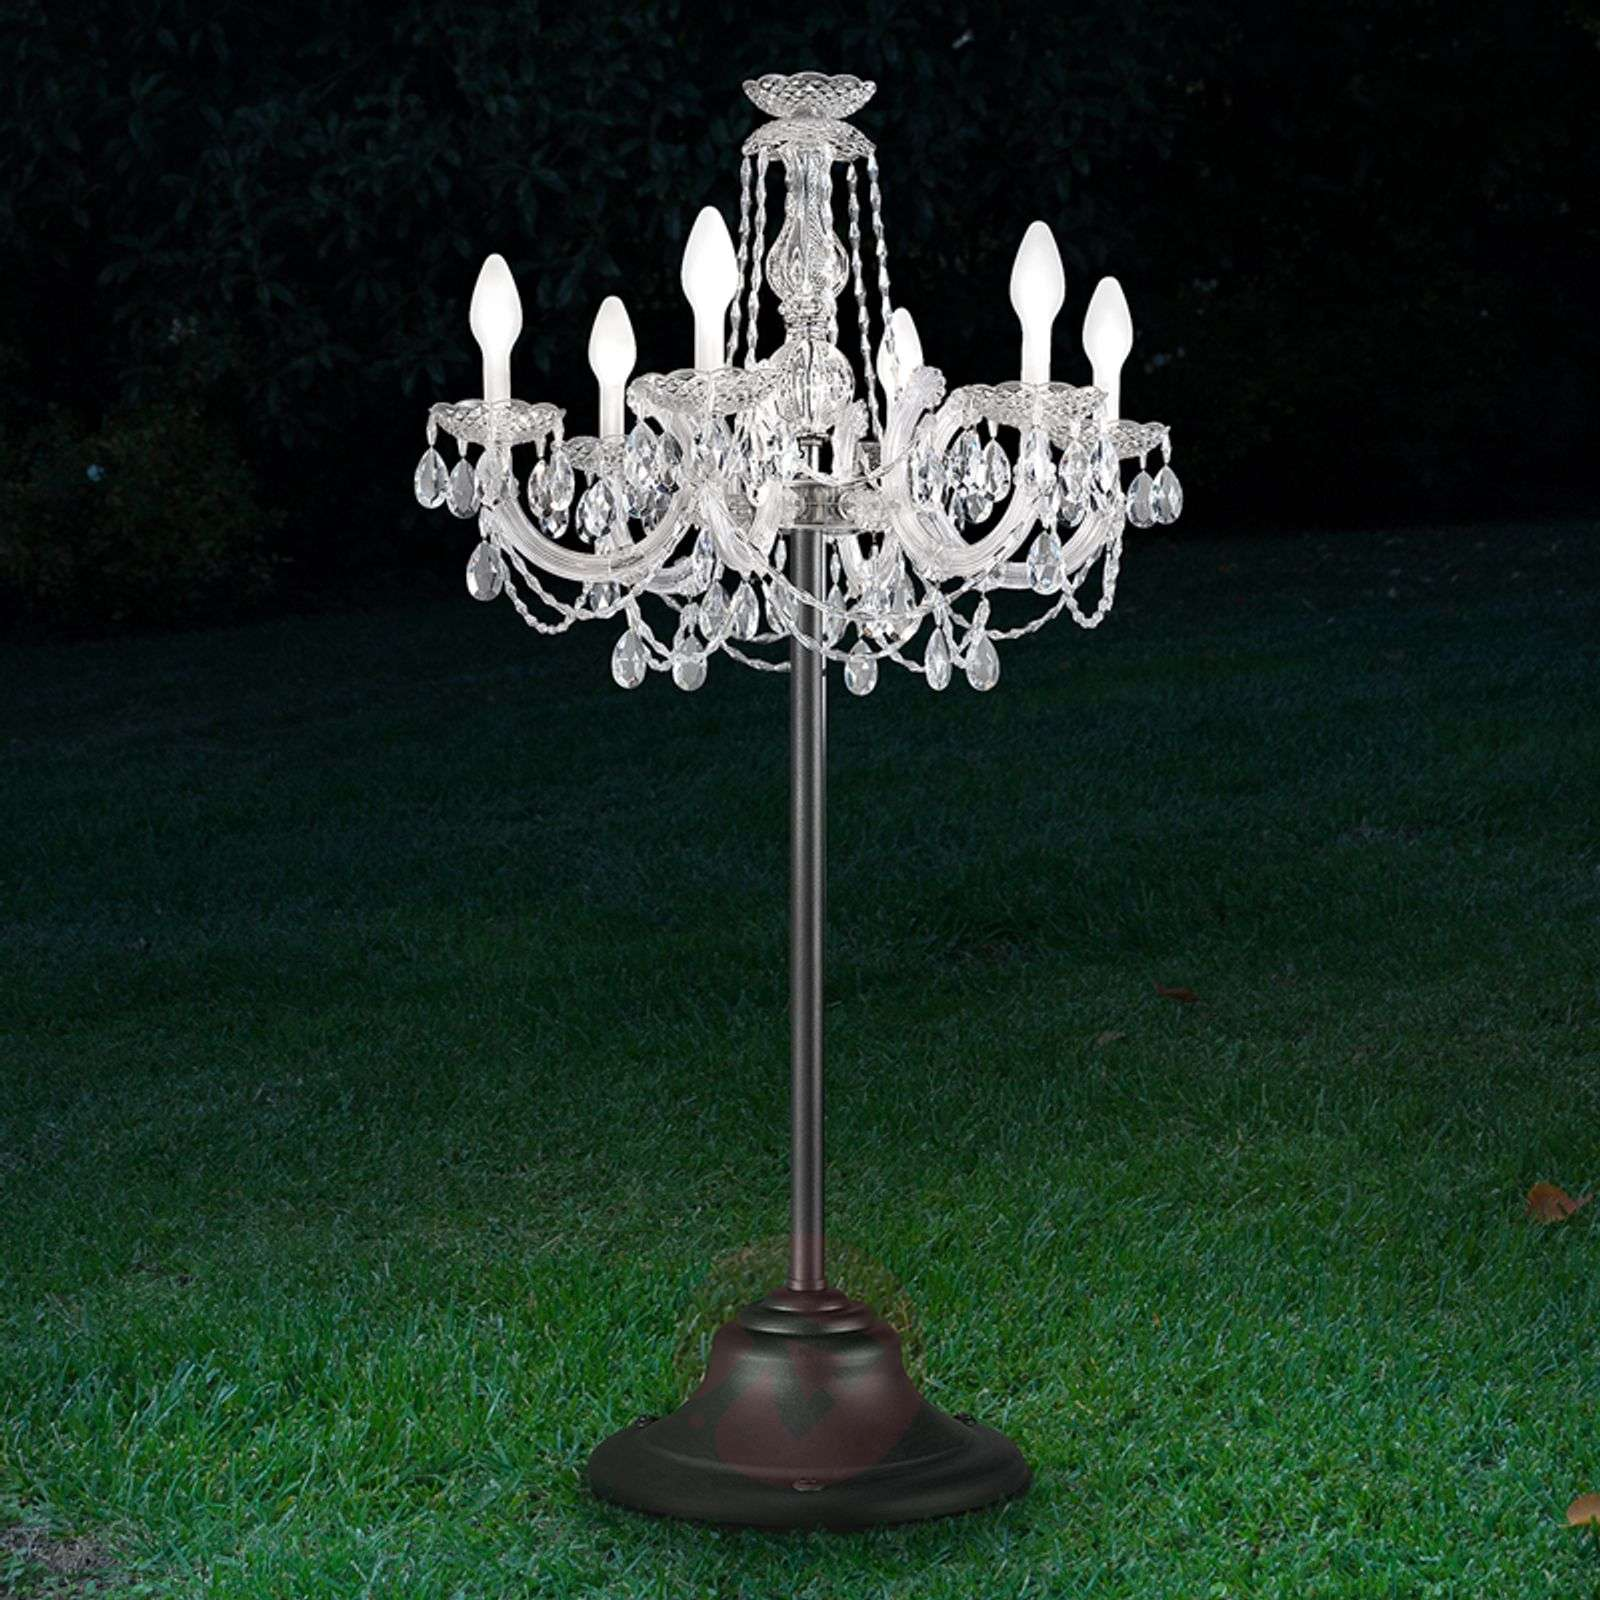 Drylight outdoor LED floor lamp RGBW, controllable-6517267-01